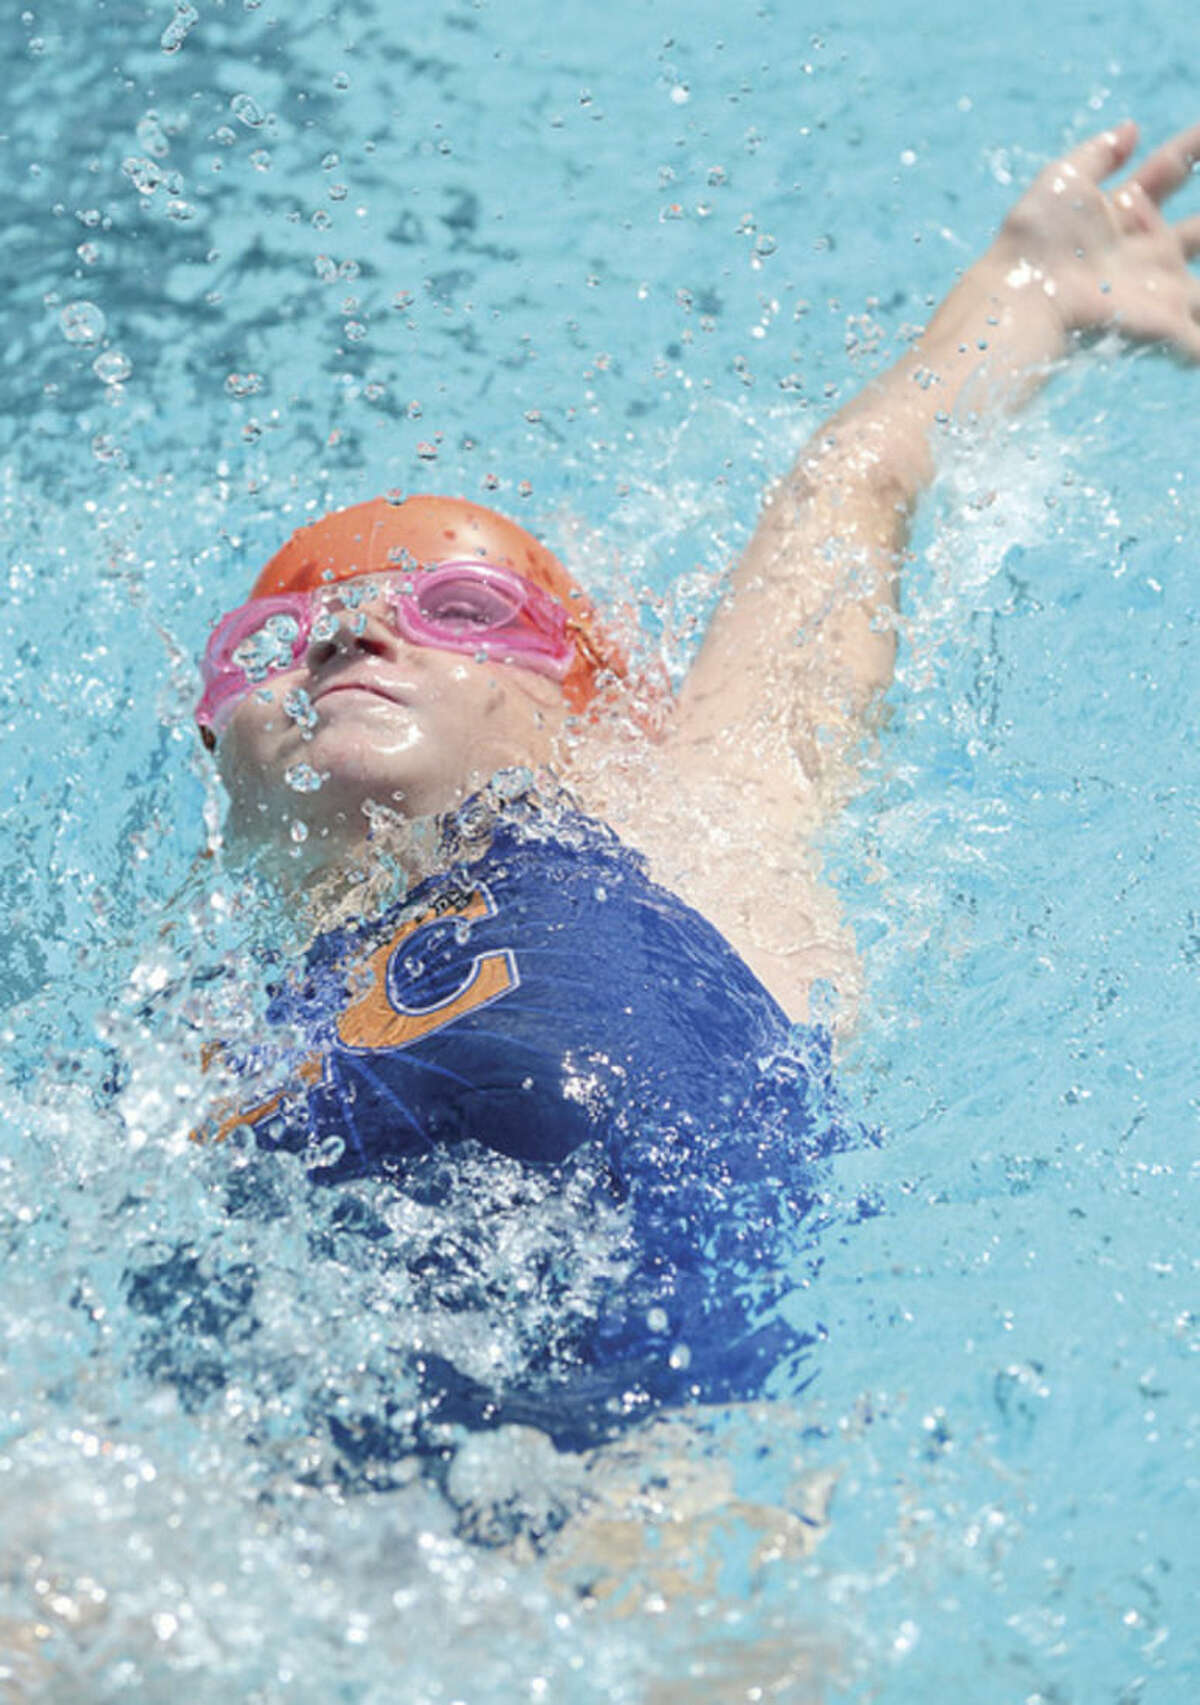 Photo by Erik Trautmann Phoebe Snow swims in the 10-and-under 25-meter backstroke for the Lake Club during the Fairfield County Swim League championship meet at Roxbury Country Club on Saturday, Aug. 8, in Stamford. Snow placed 10th in the event with a time of 24.03, thereby helping Lake Club place 10th as a team overall.